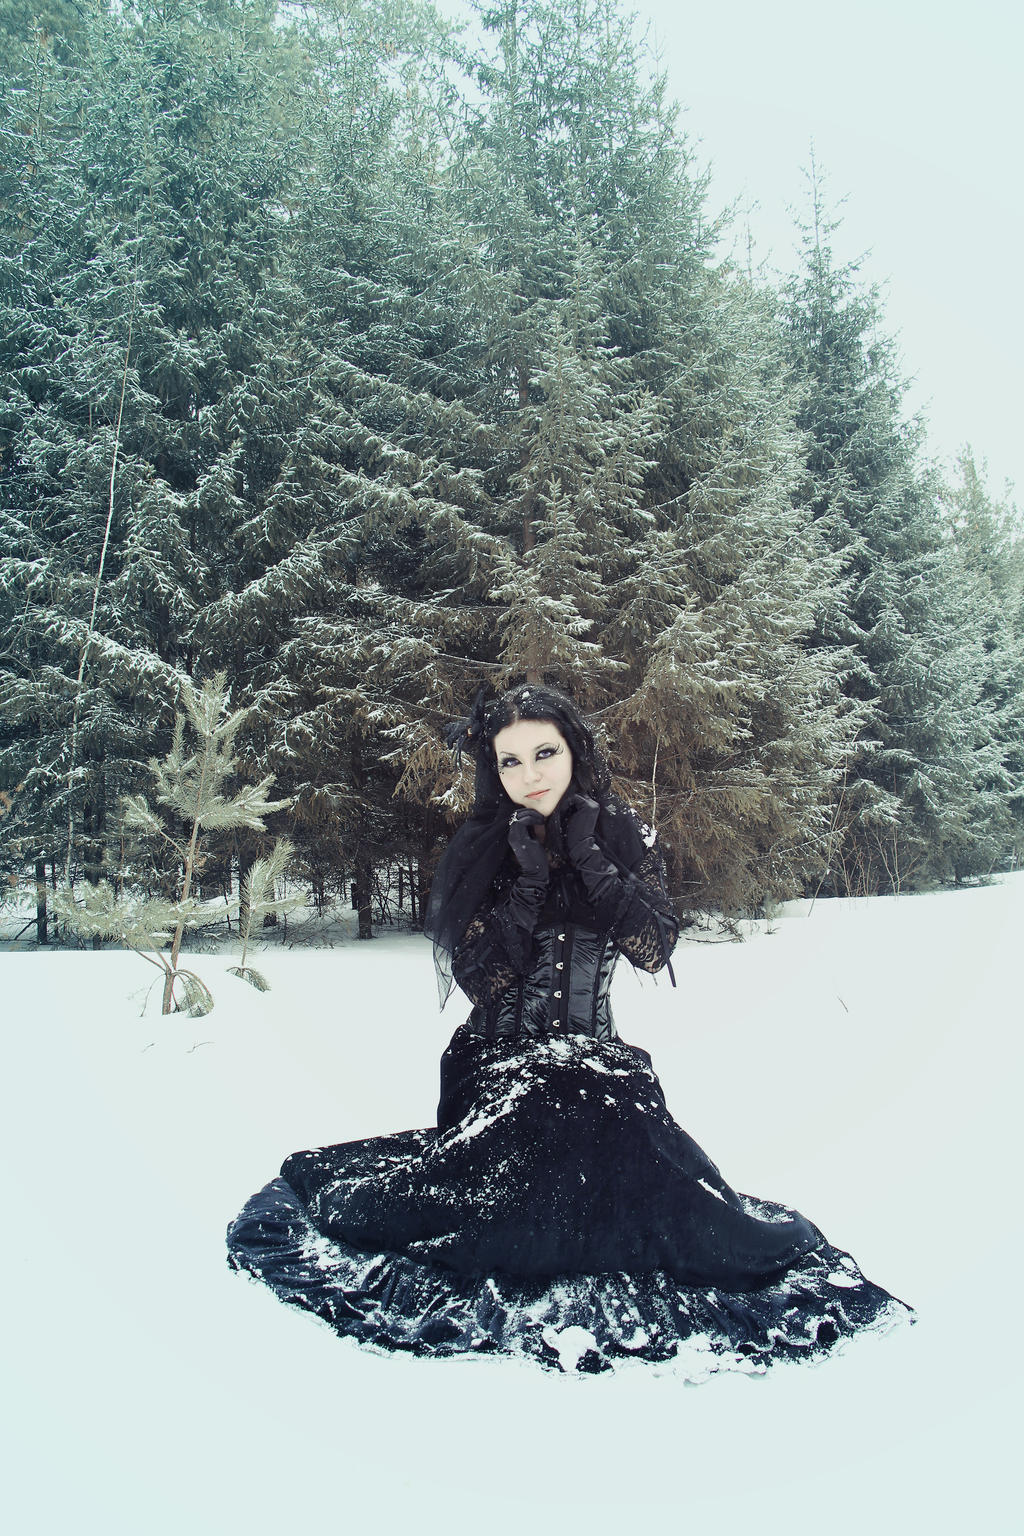 Gothic winter stock_2 by MysteriaViolentStock